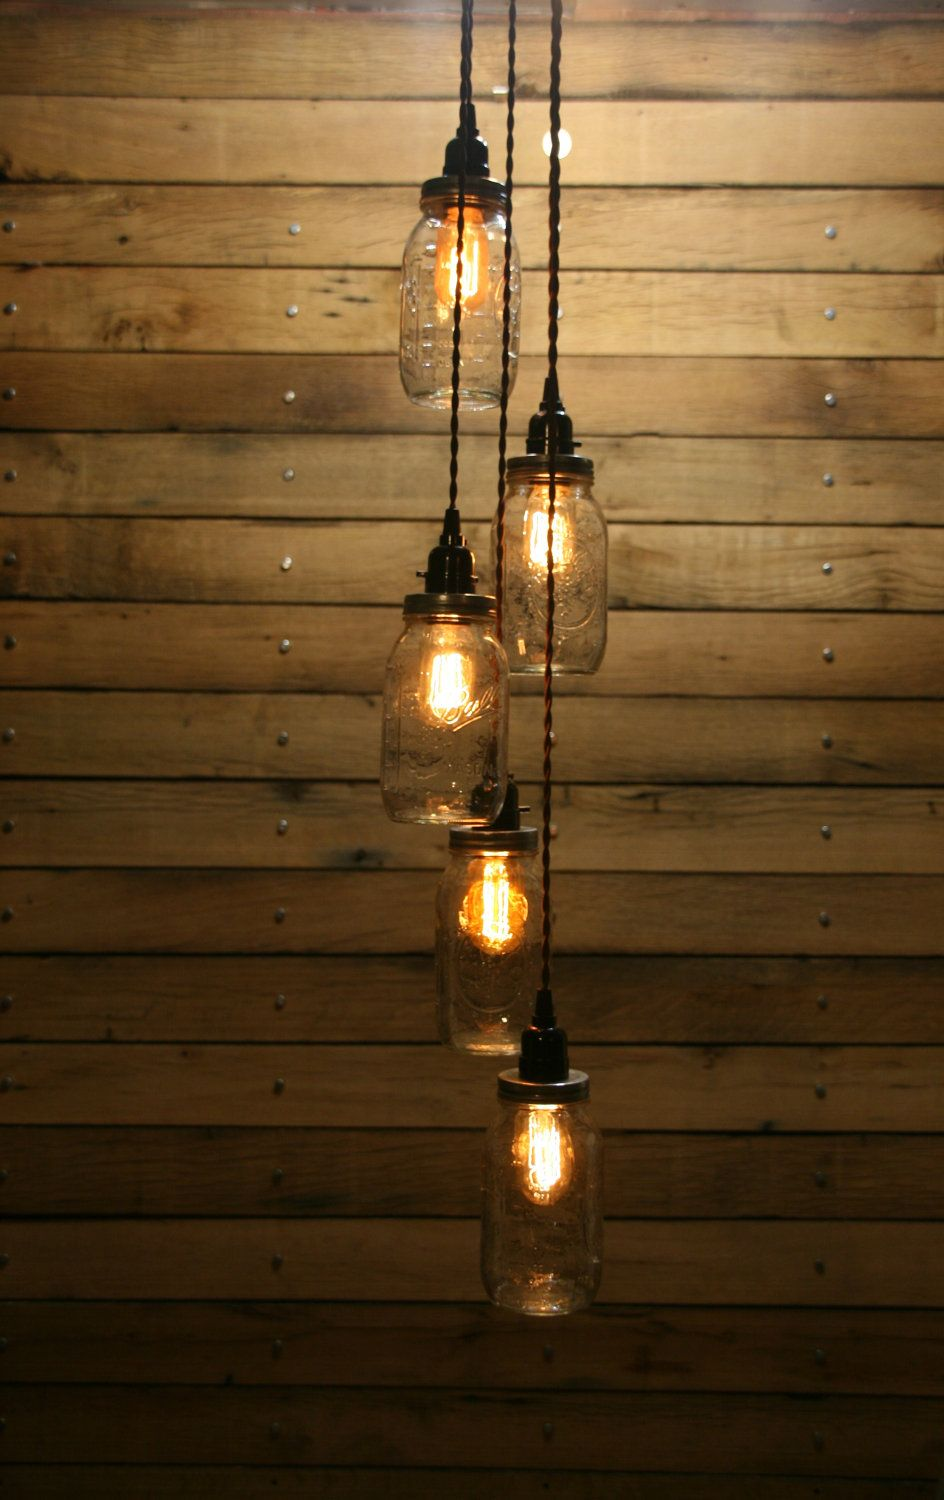 5 jar pendant light mason jar chandelier light 3 hang down quart 5 jar pendant light mason jar chandelier light 3 hang down quart mason jar hanging pendant light black canopy black twisted cloth cord arubaitofo Choice Image